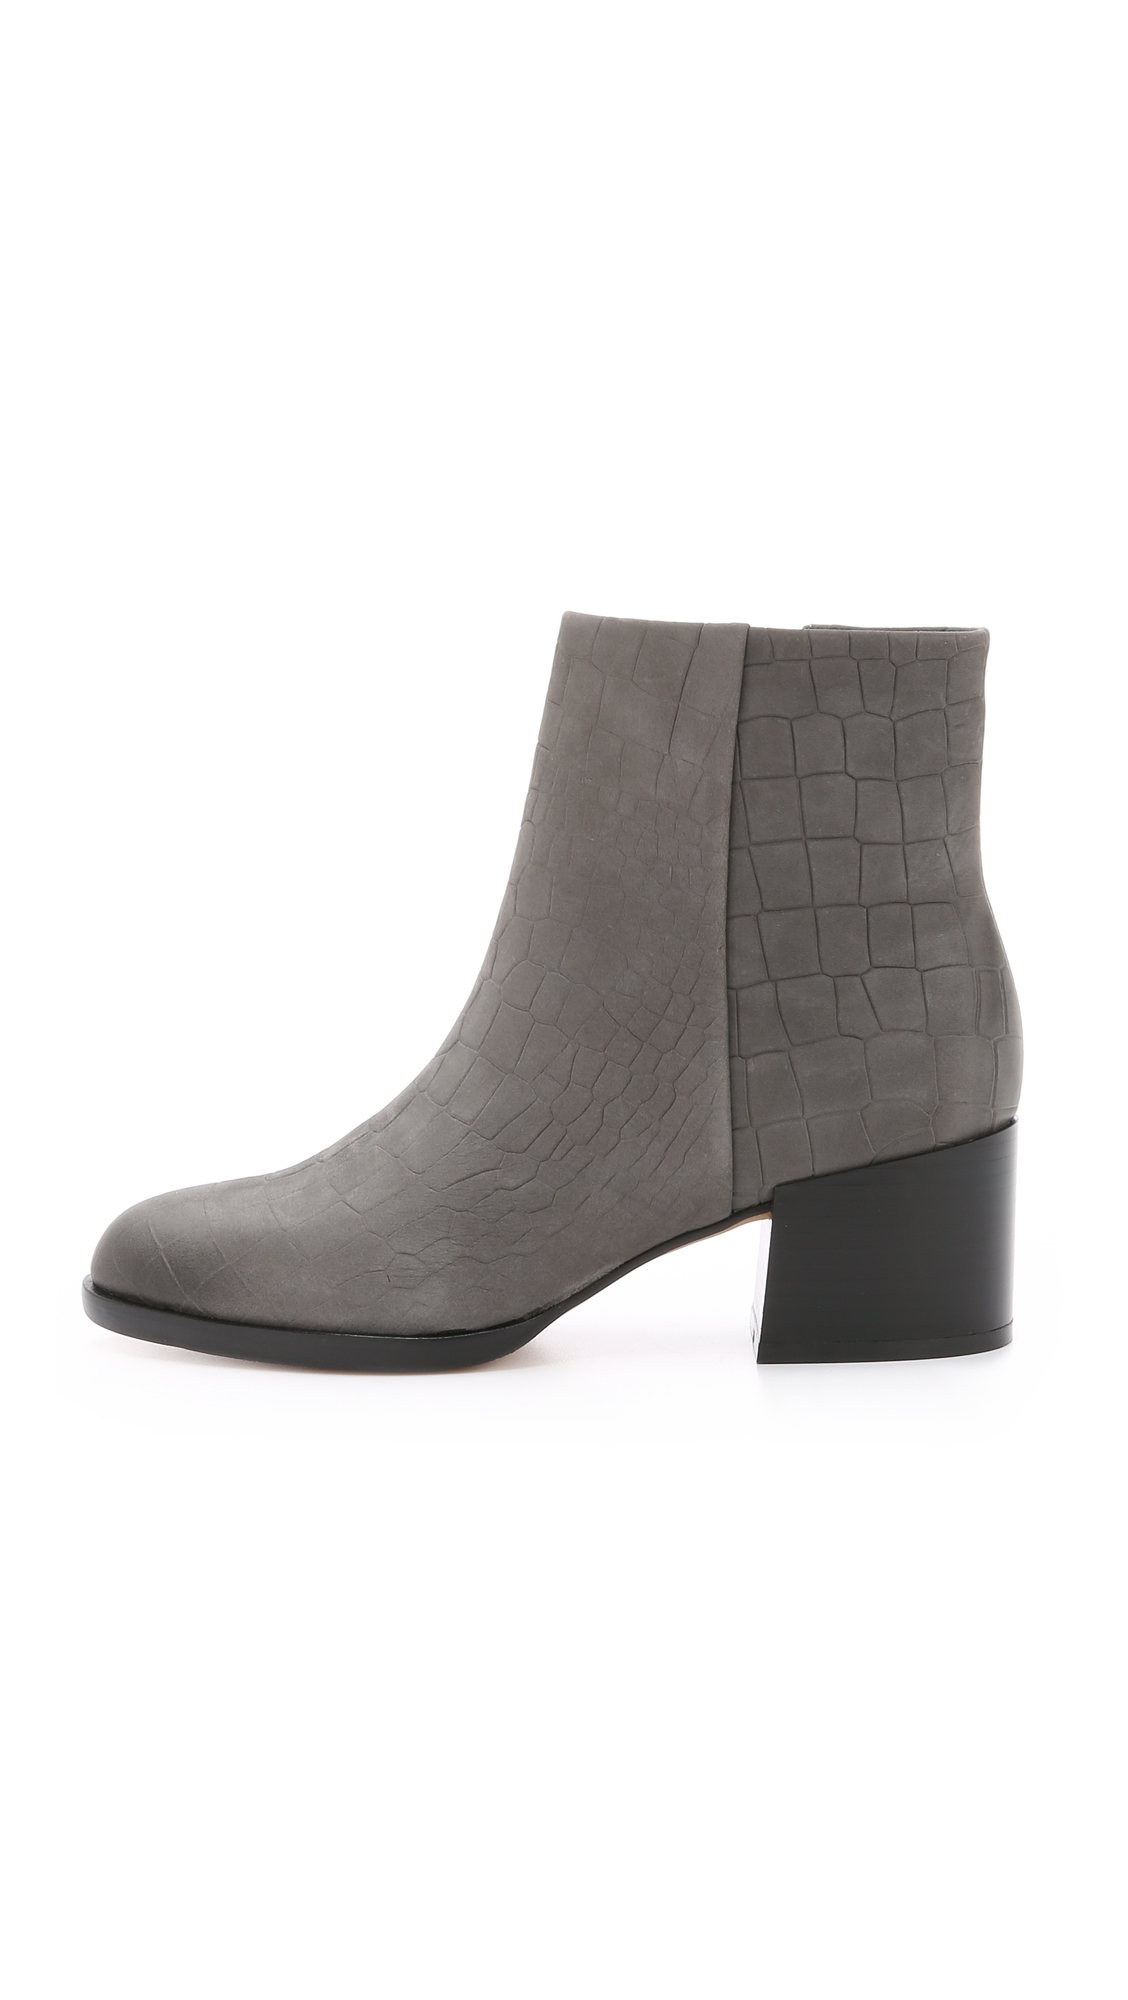 ef3a5c39c Sam Edelman Joey Booties in Gray - Lyst